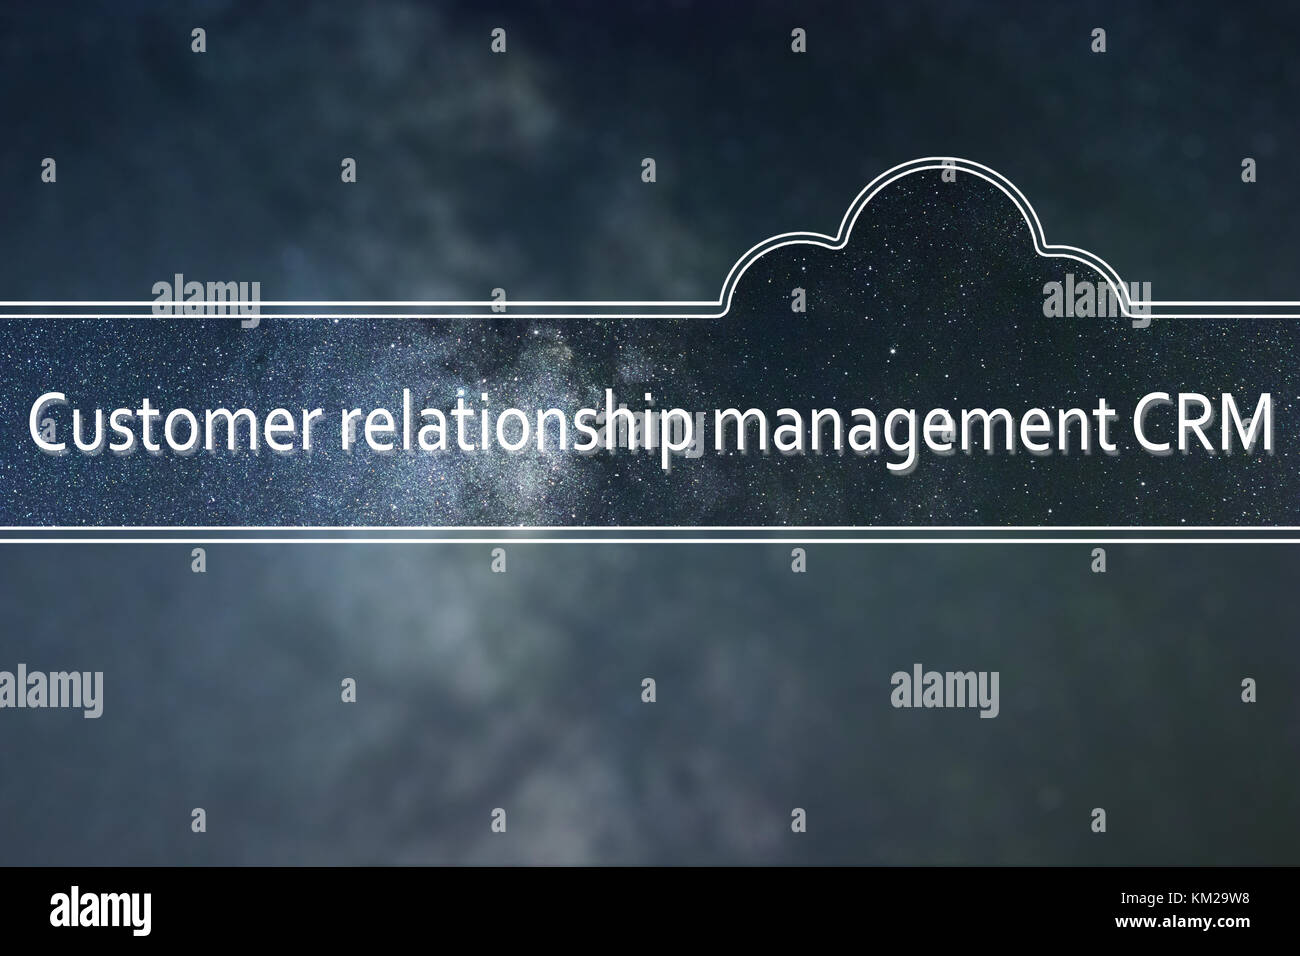 Customer relationship management CRM word cloud Concept. Space background. - Stock Image